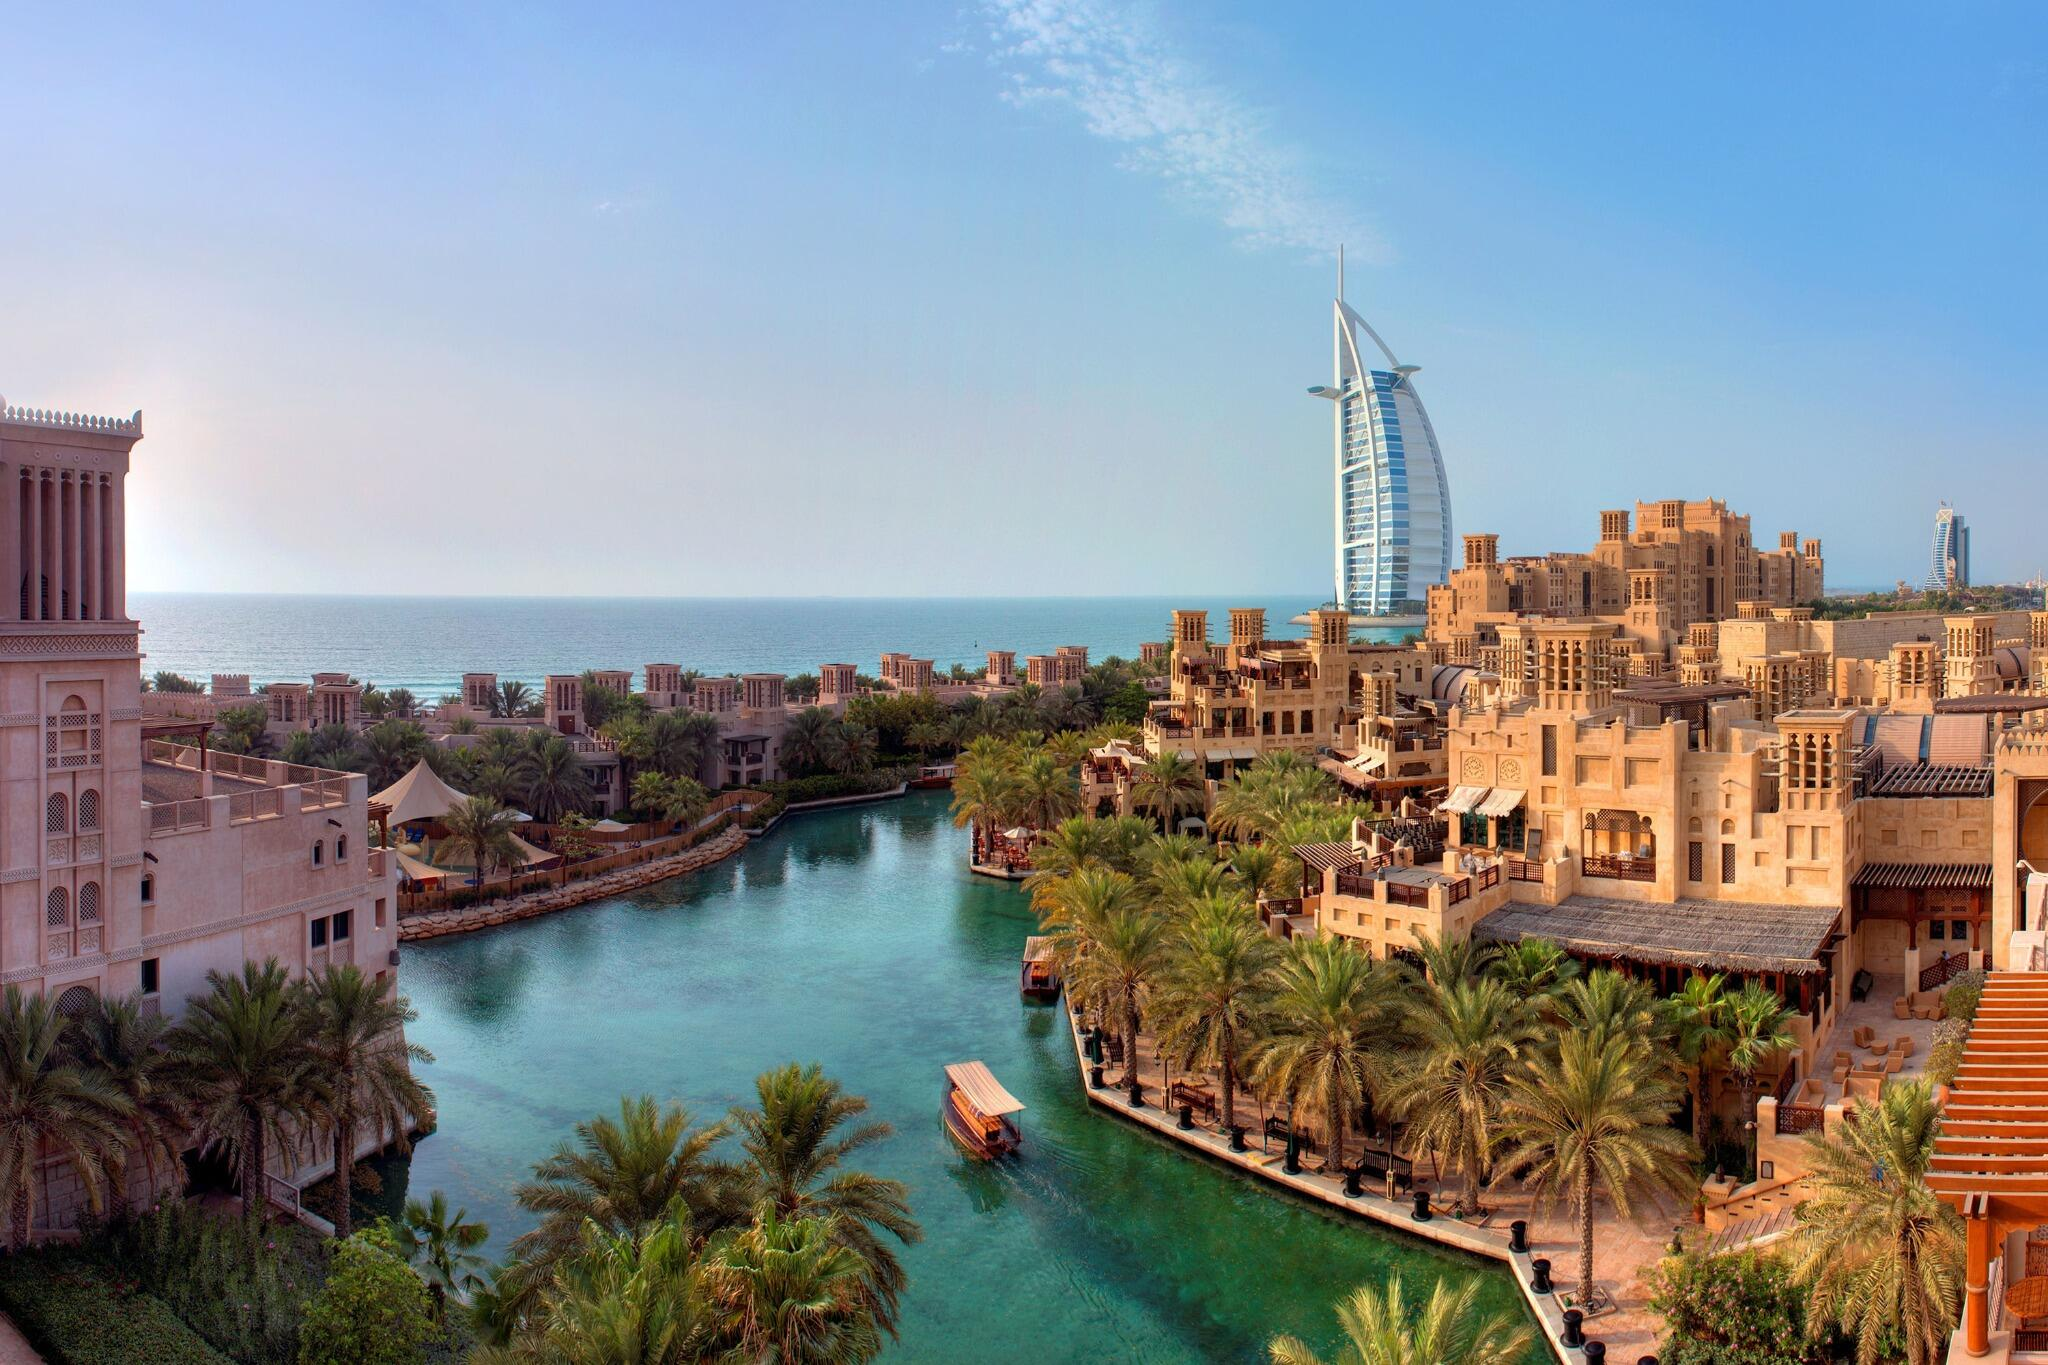 Only 4 months to go! RT @MadinatJumeirah: Happy #Easter from Madinat Jumeirah Resort. http://t.co/cpDWW8DKBg http://t.co/iG6S4MUHUV